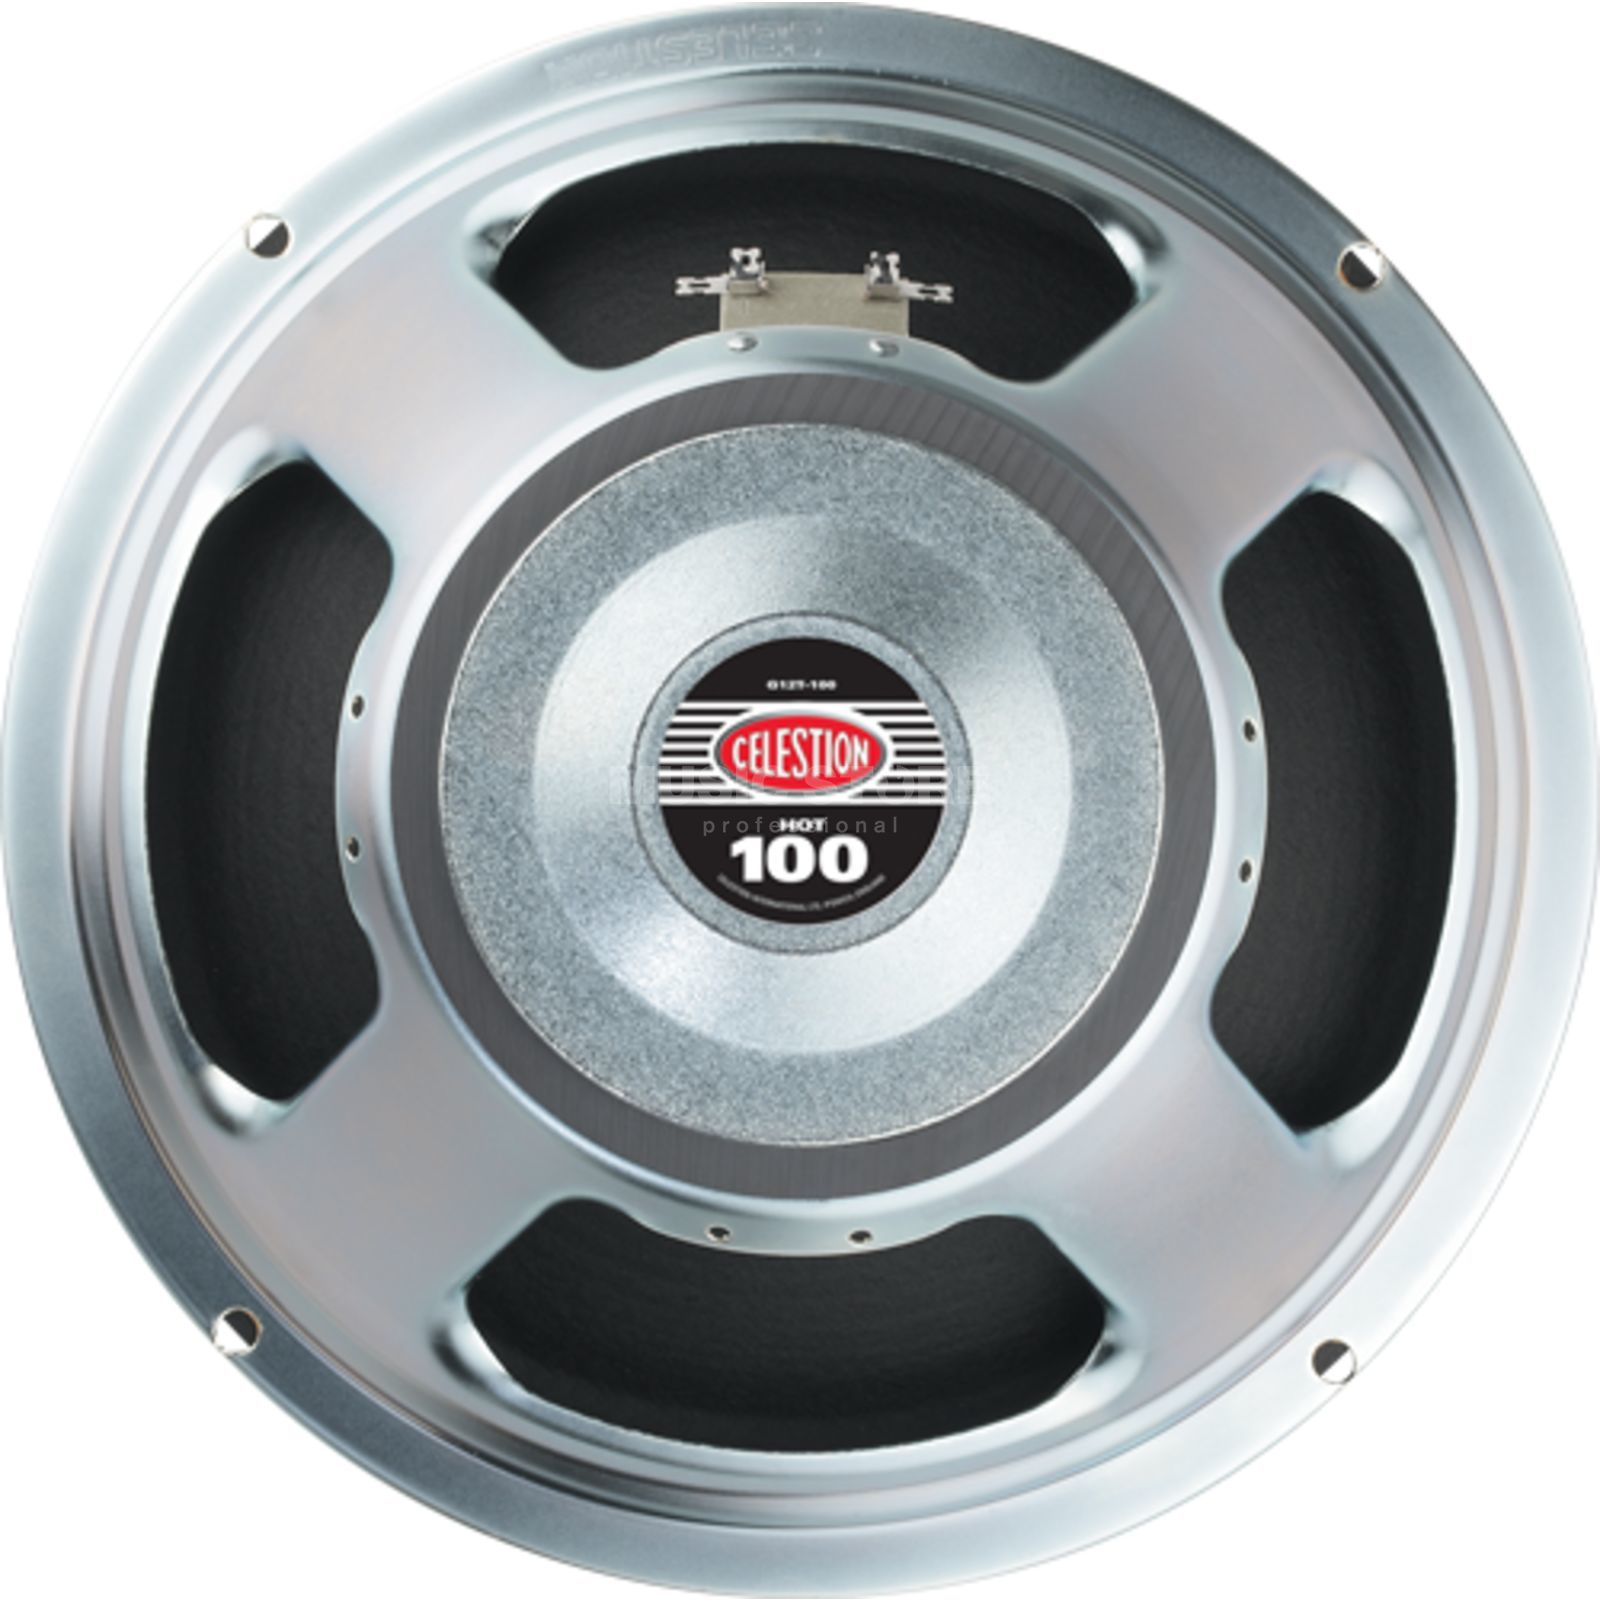 "Celestion G12T ""Hot 100"" 12"" Speaker 8 Ohm Produktbild"